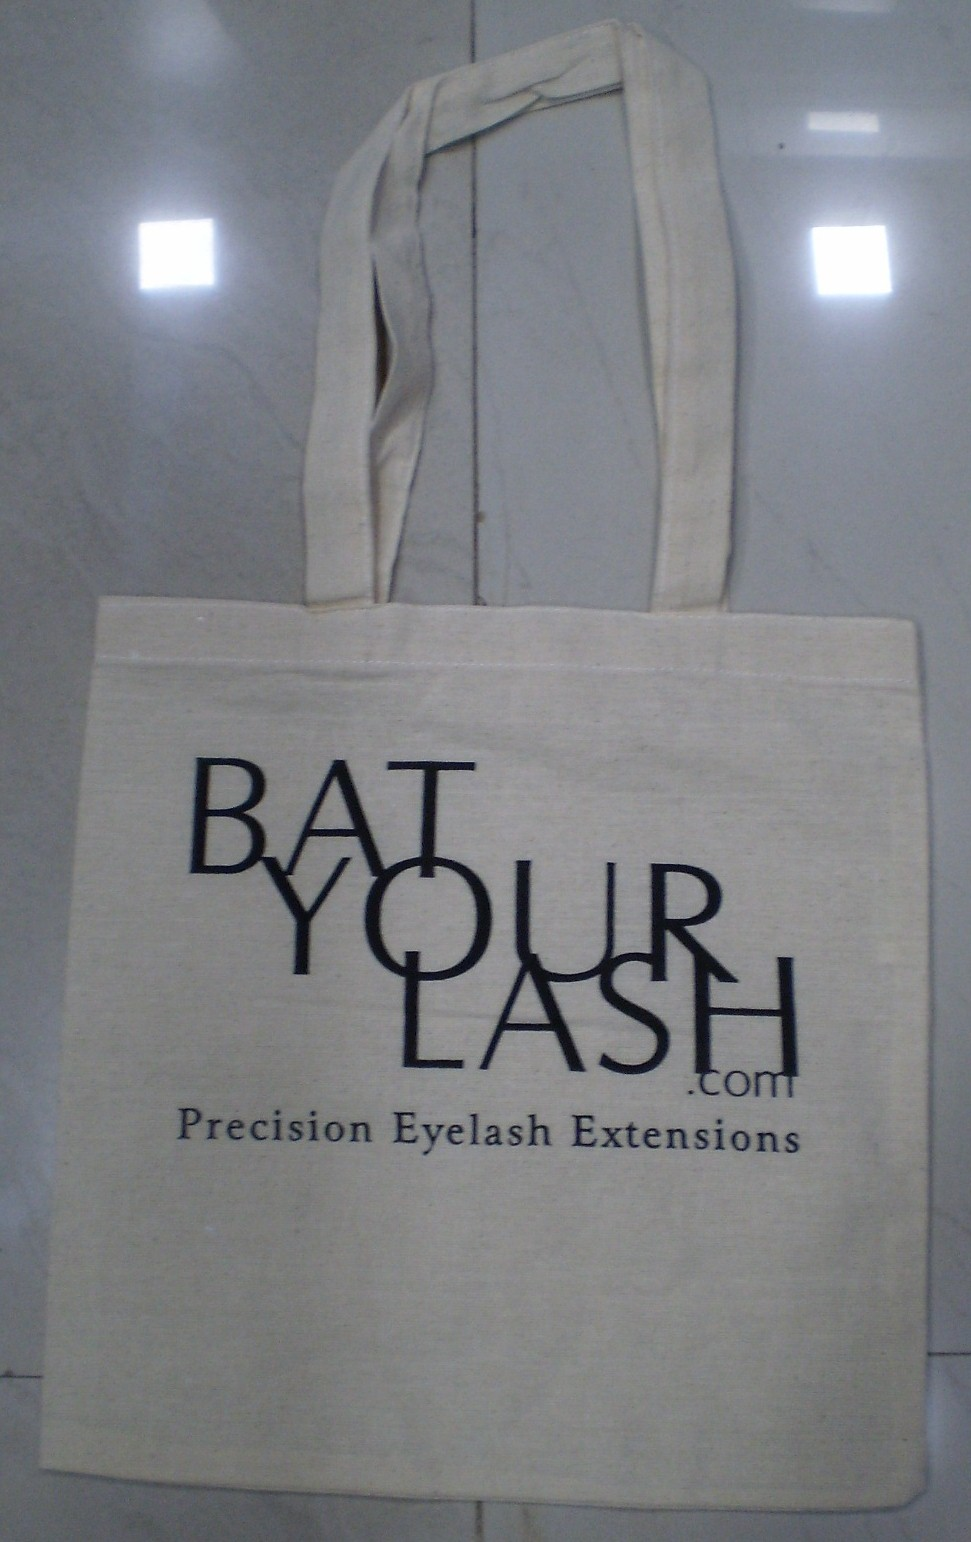 Bat Your Lash Image